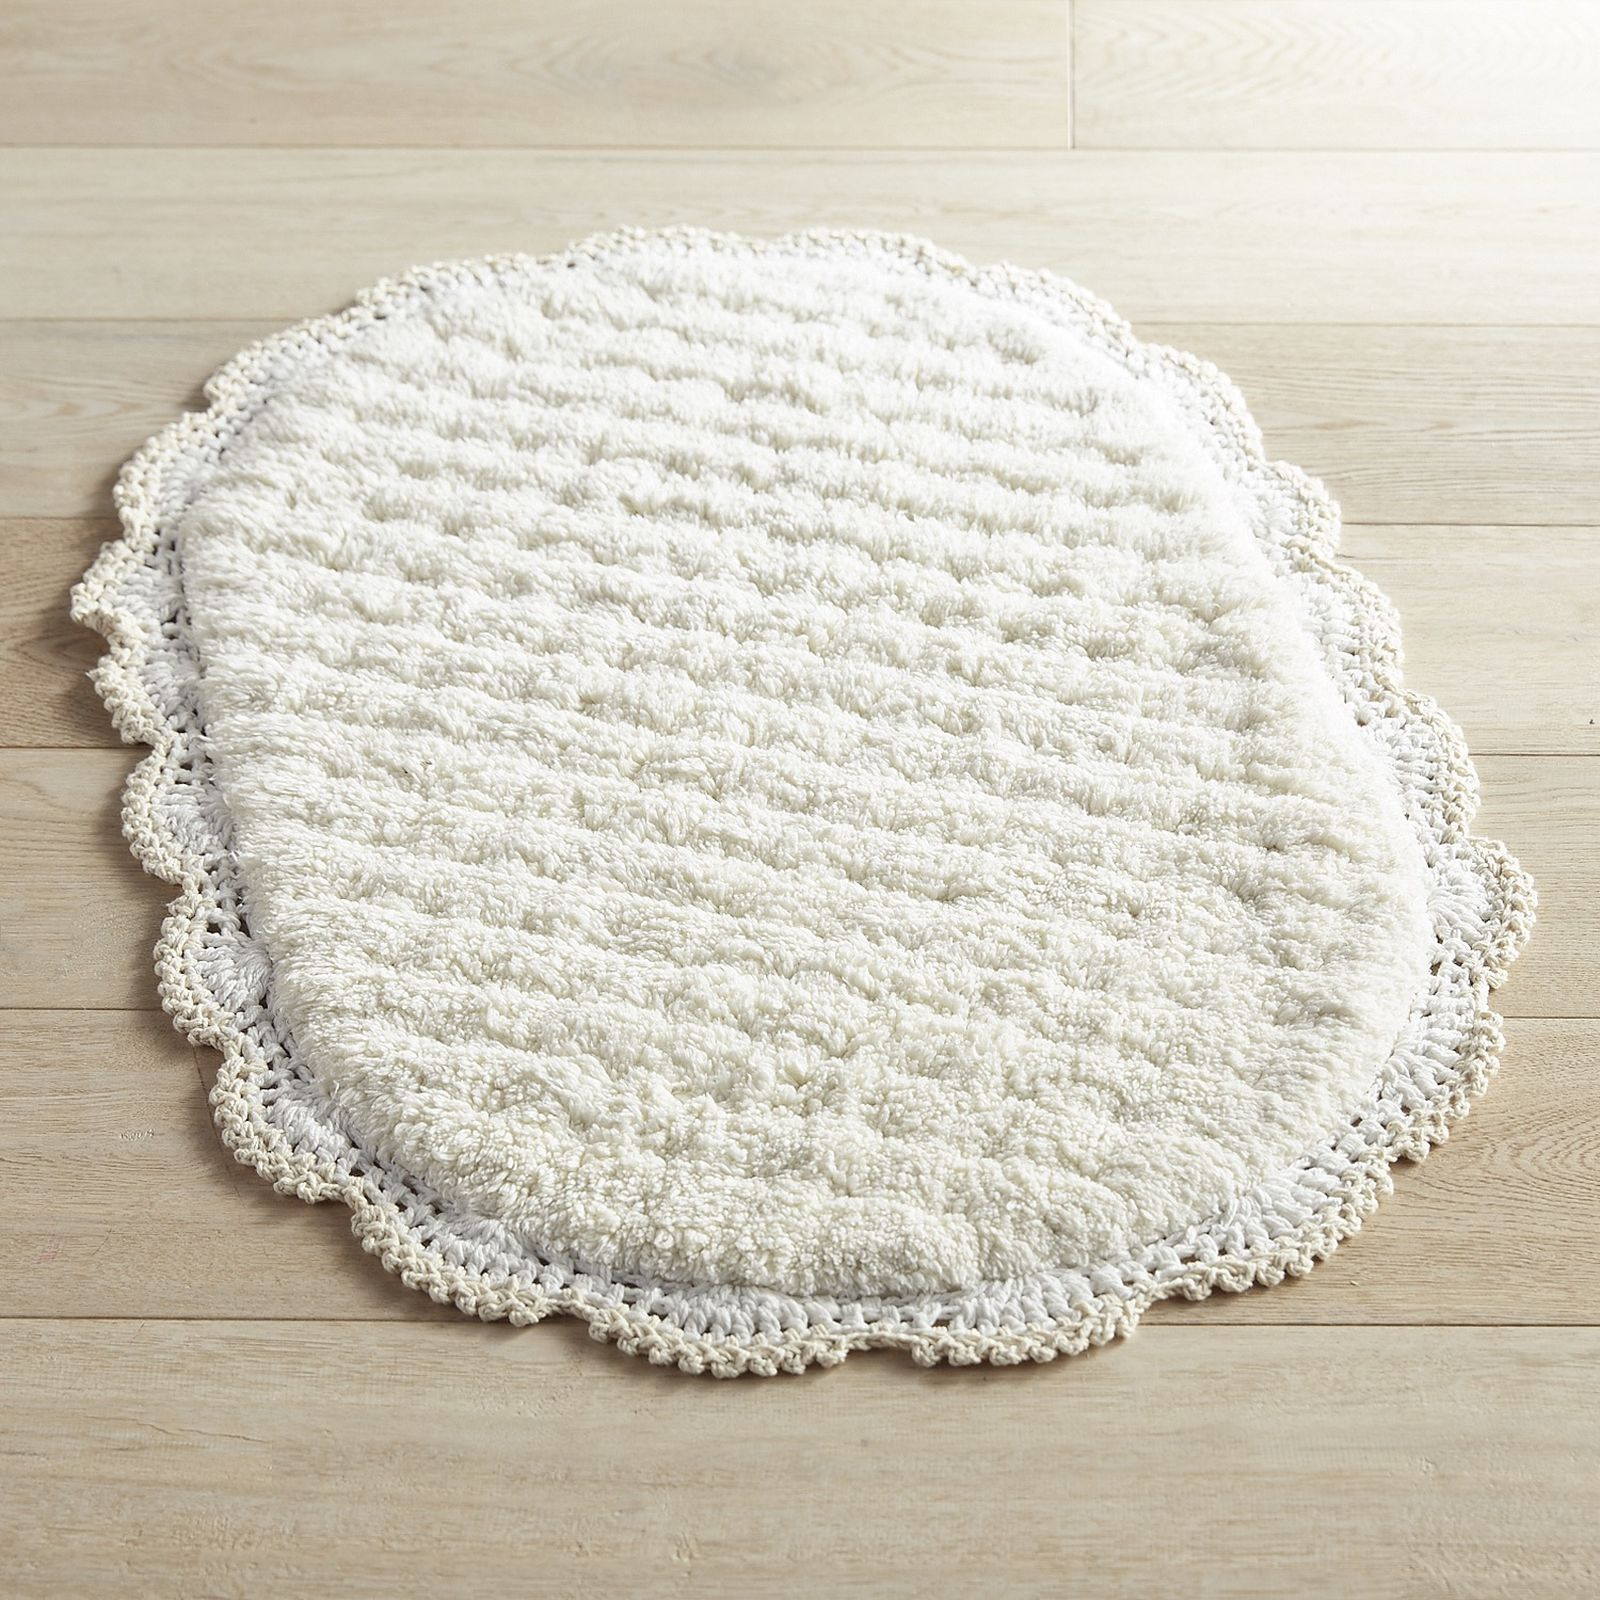 When It Comes To Comfort And Charm It S All In The Details Which Is Why Our Exclusive Bath Rug Features 100 Cotton Bath Mat Rug Rugs Colorful Bathroom Rugs